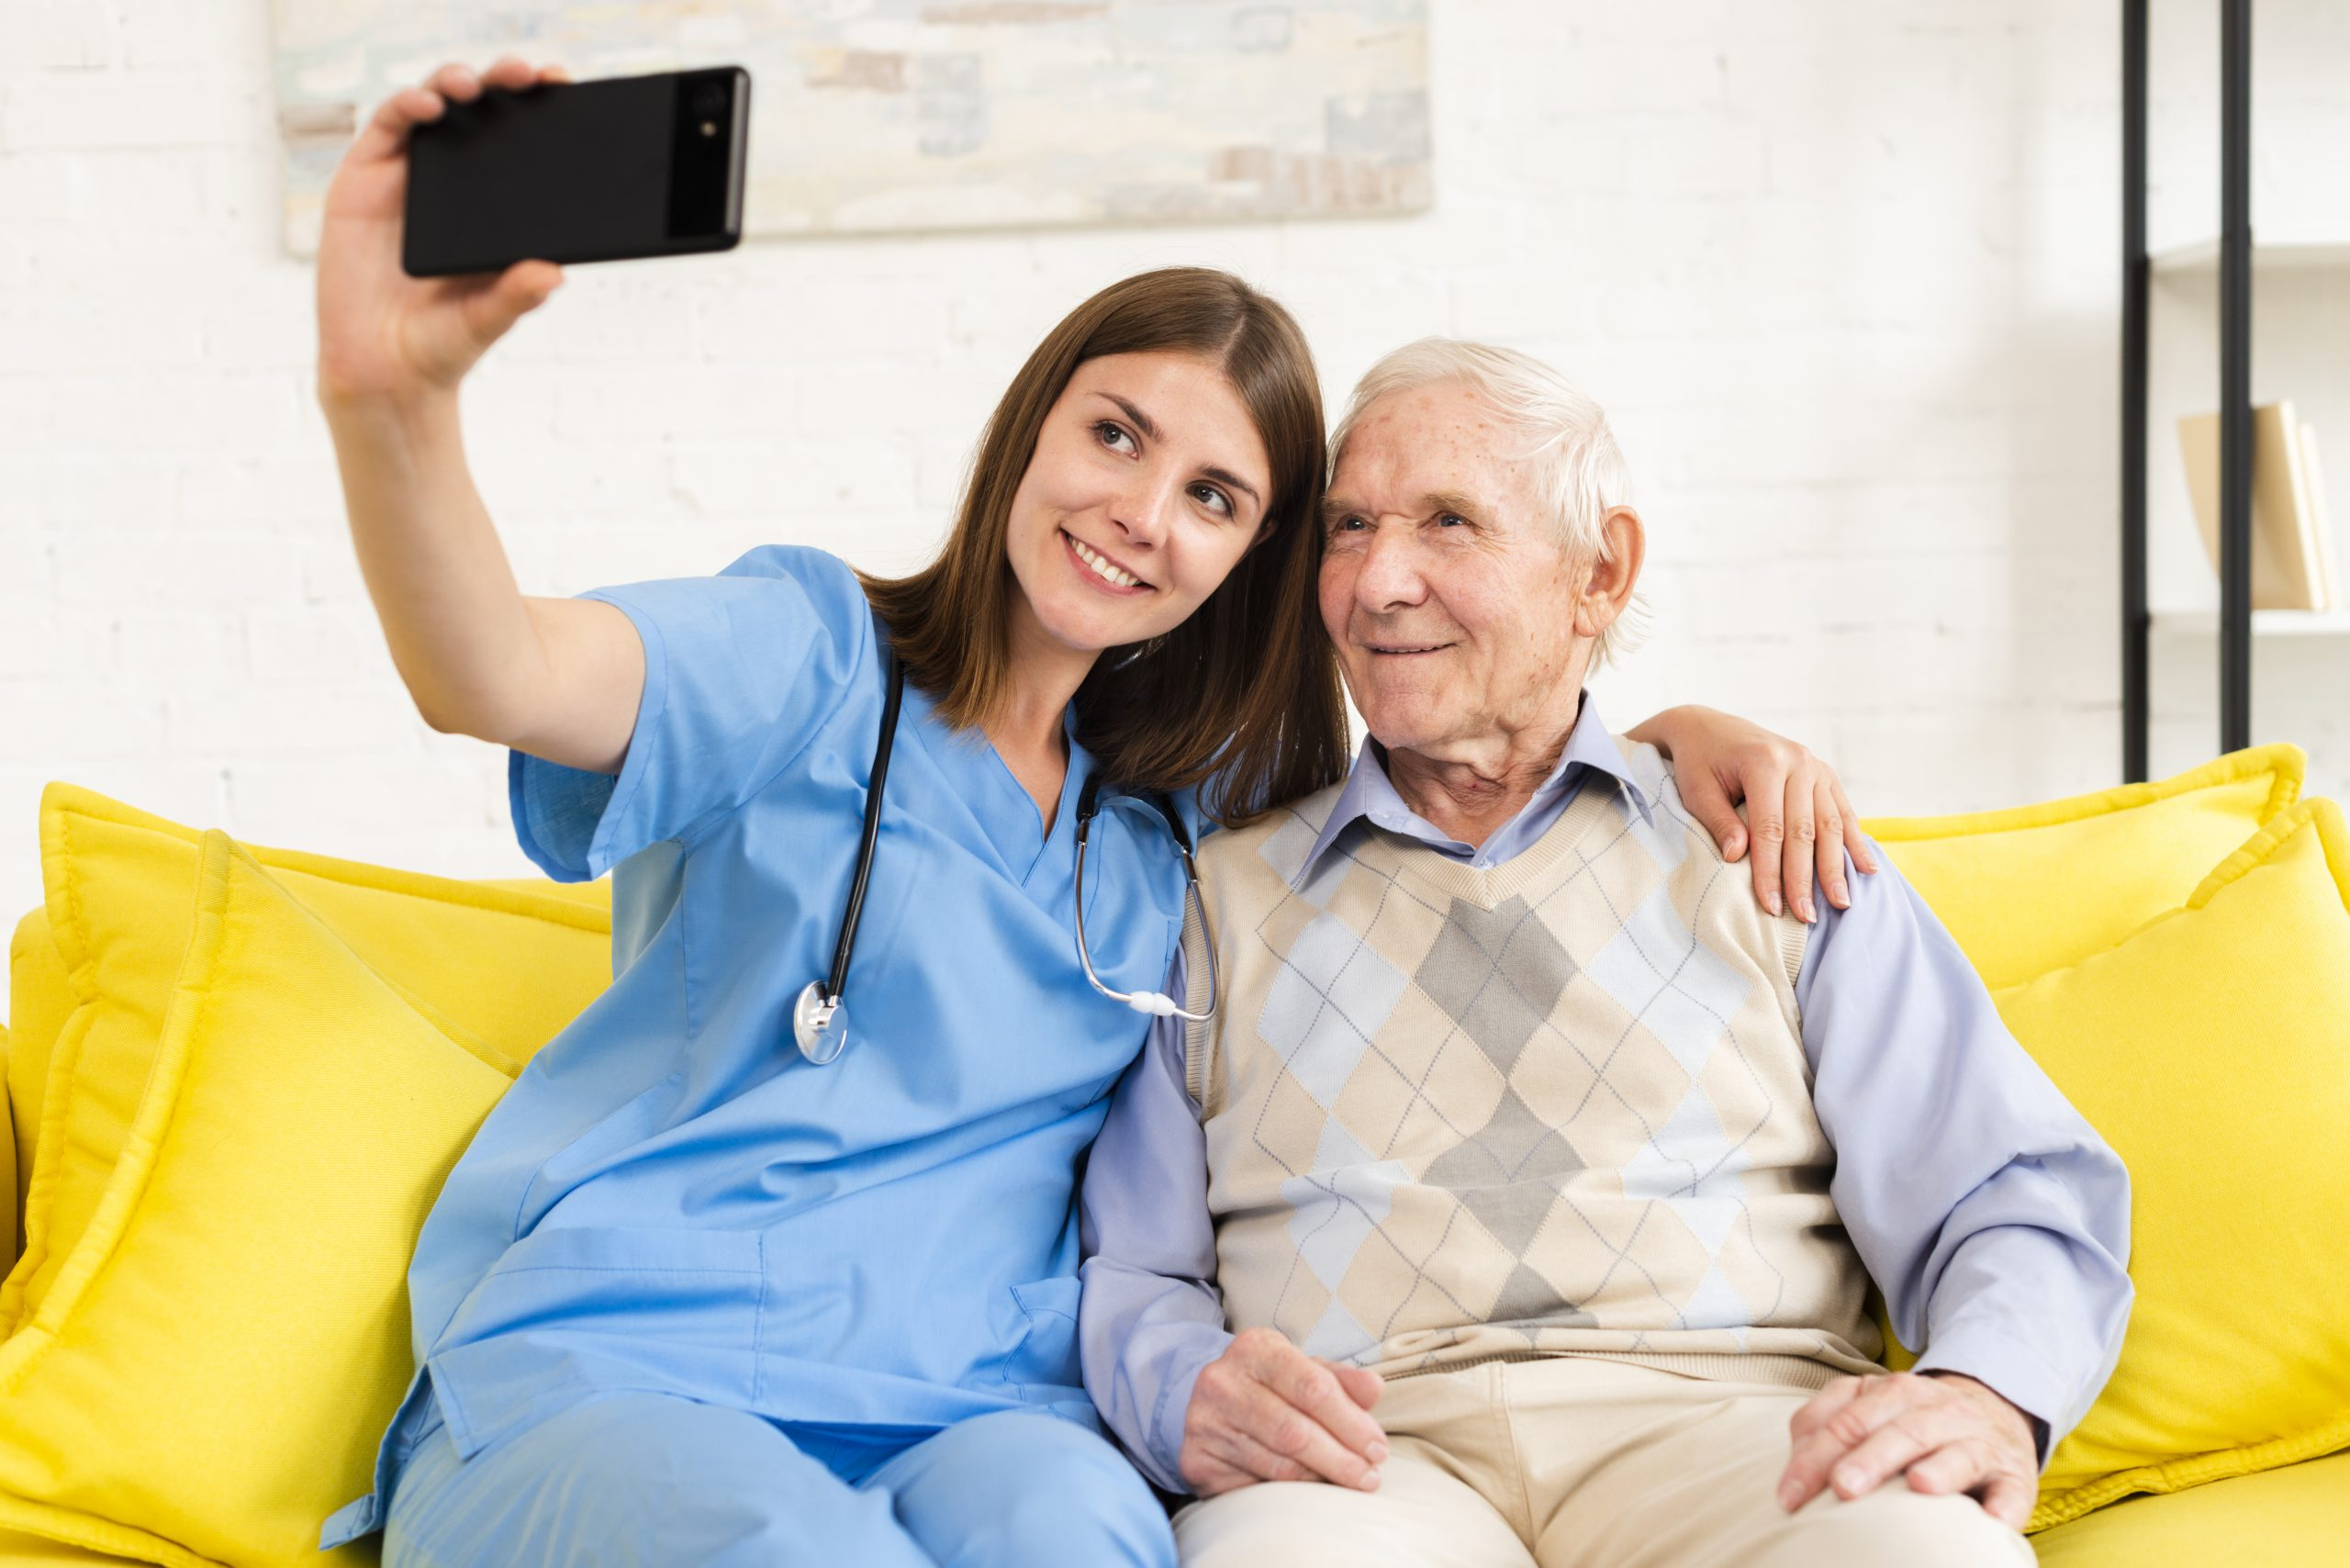 Nurse taking pic with resident